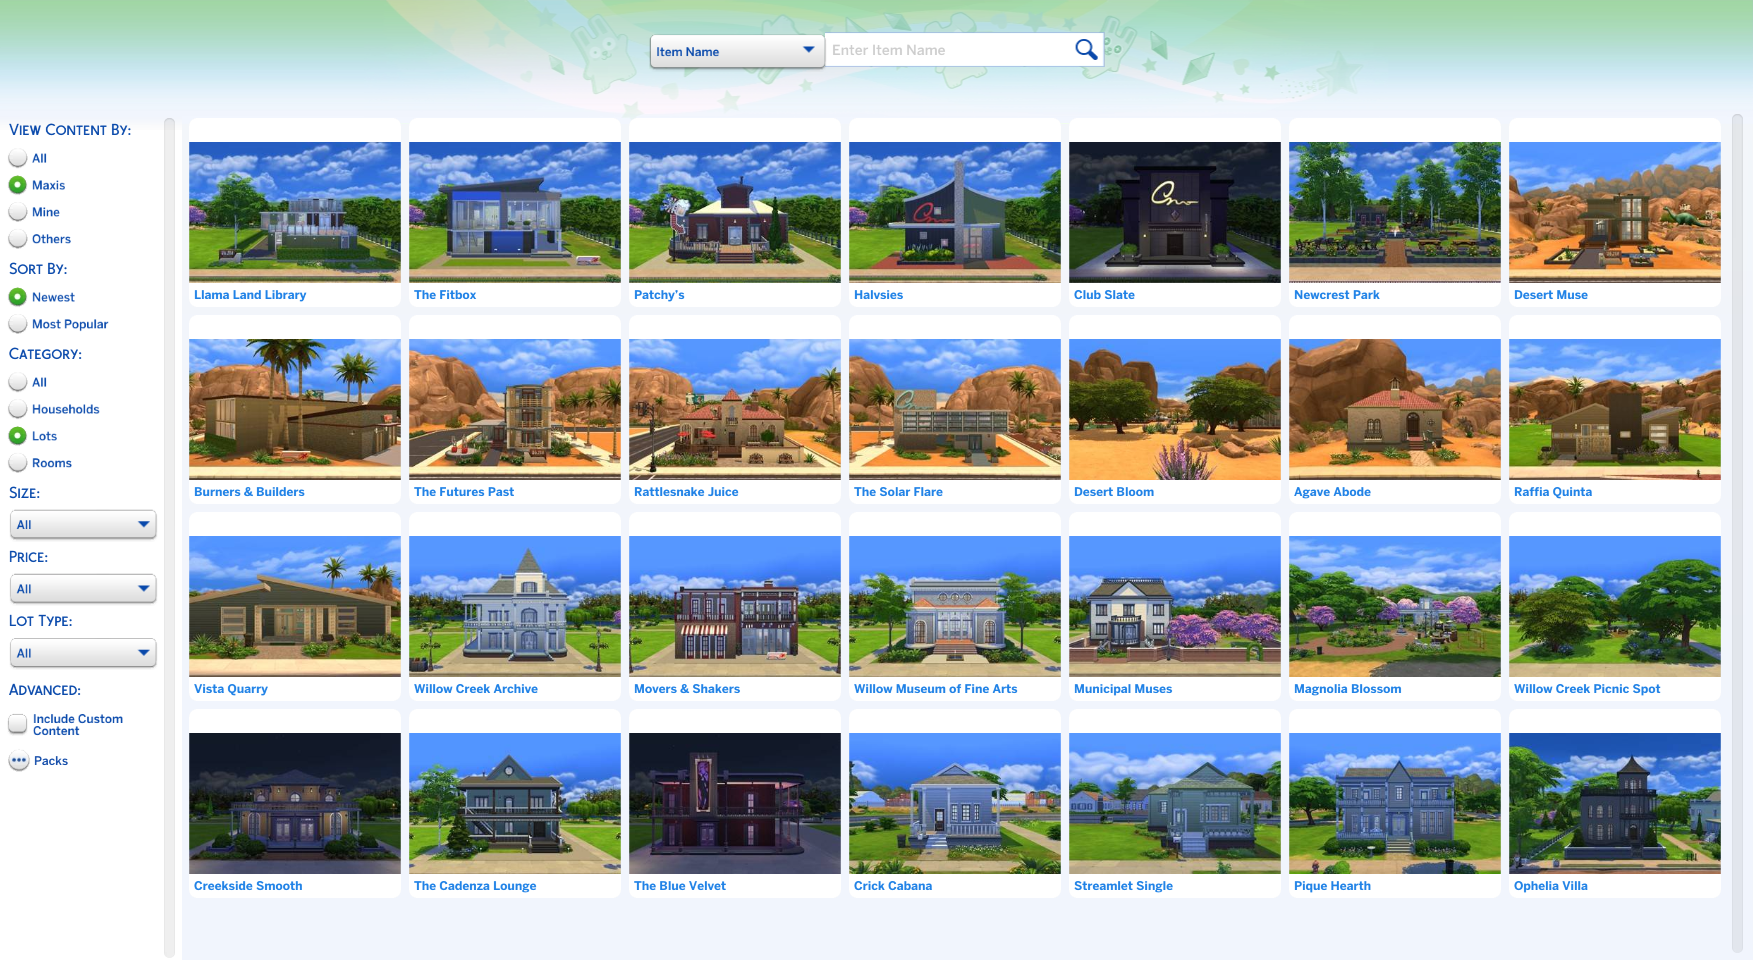 Lots and Houses bin | The Sims Wiki | FANDOM powered by Wikia